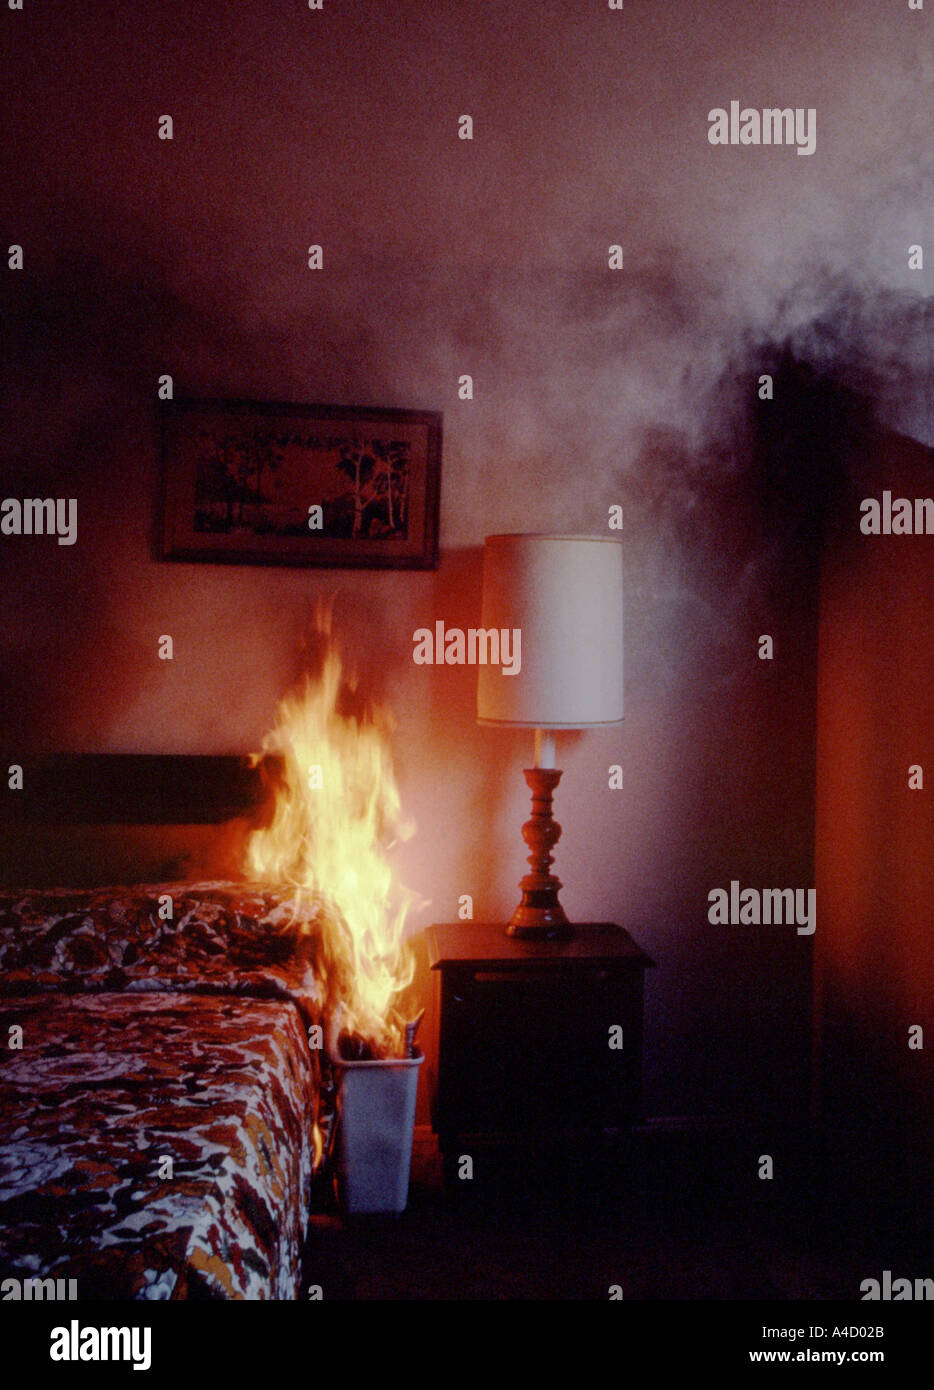 Fire In Bedroom Waste Basket Stock Photo: 315435   Alamy